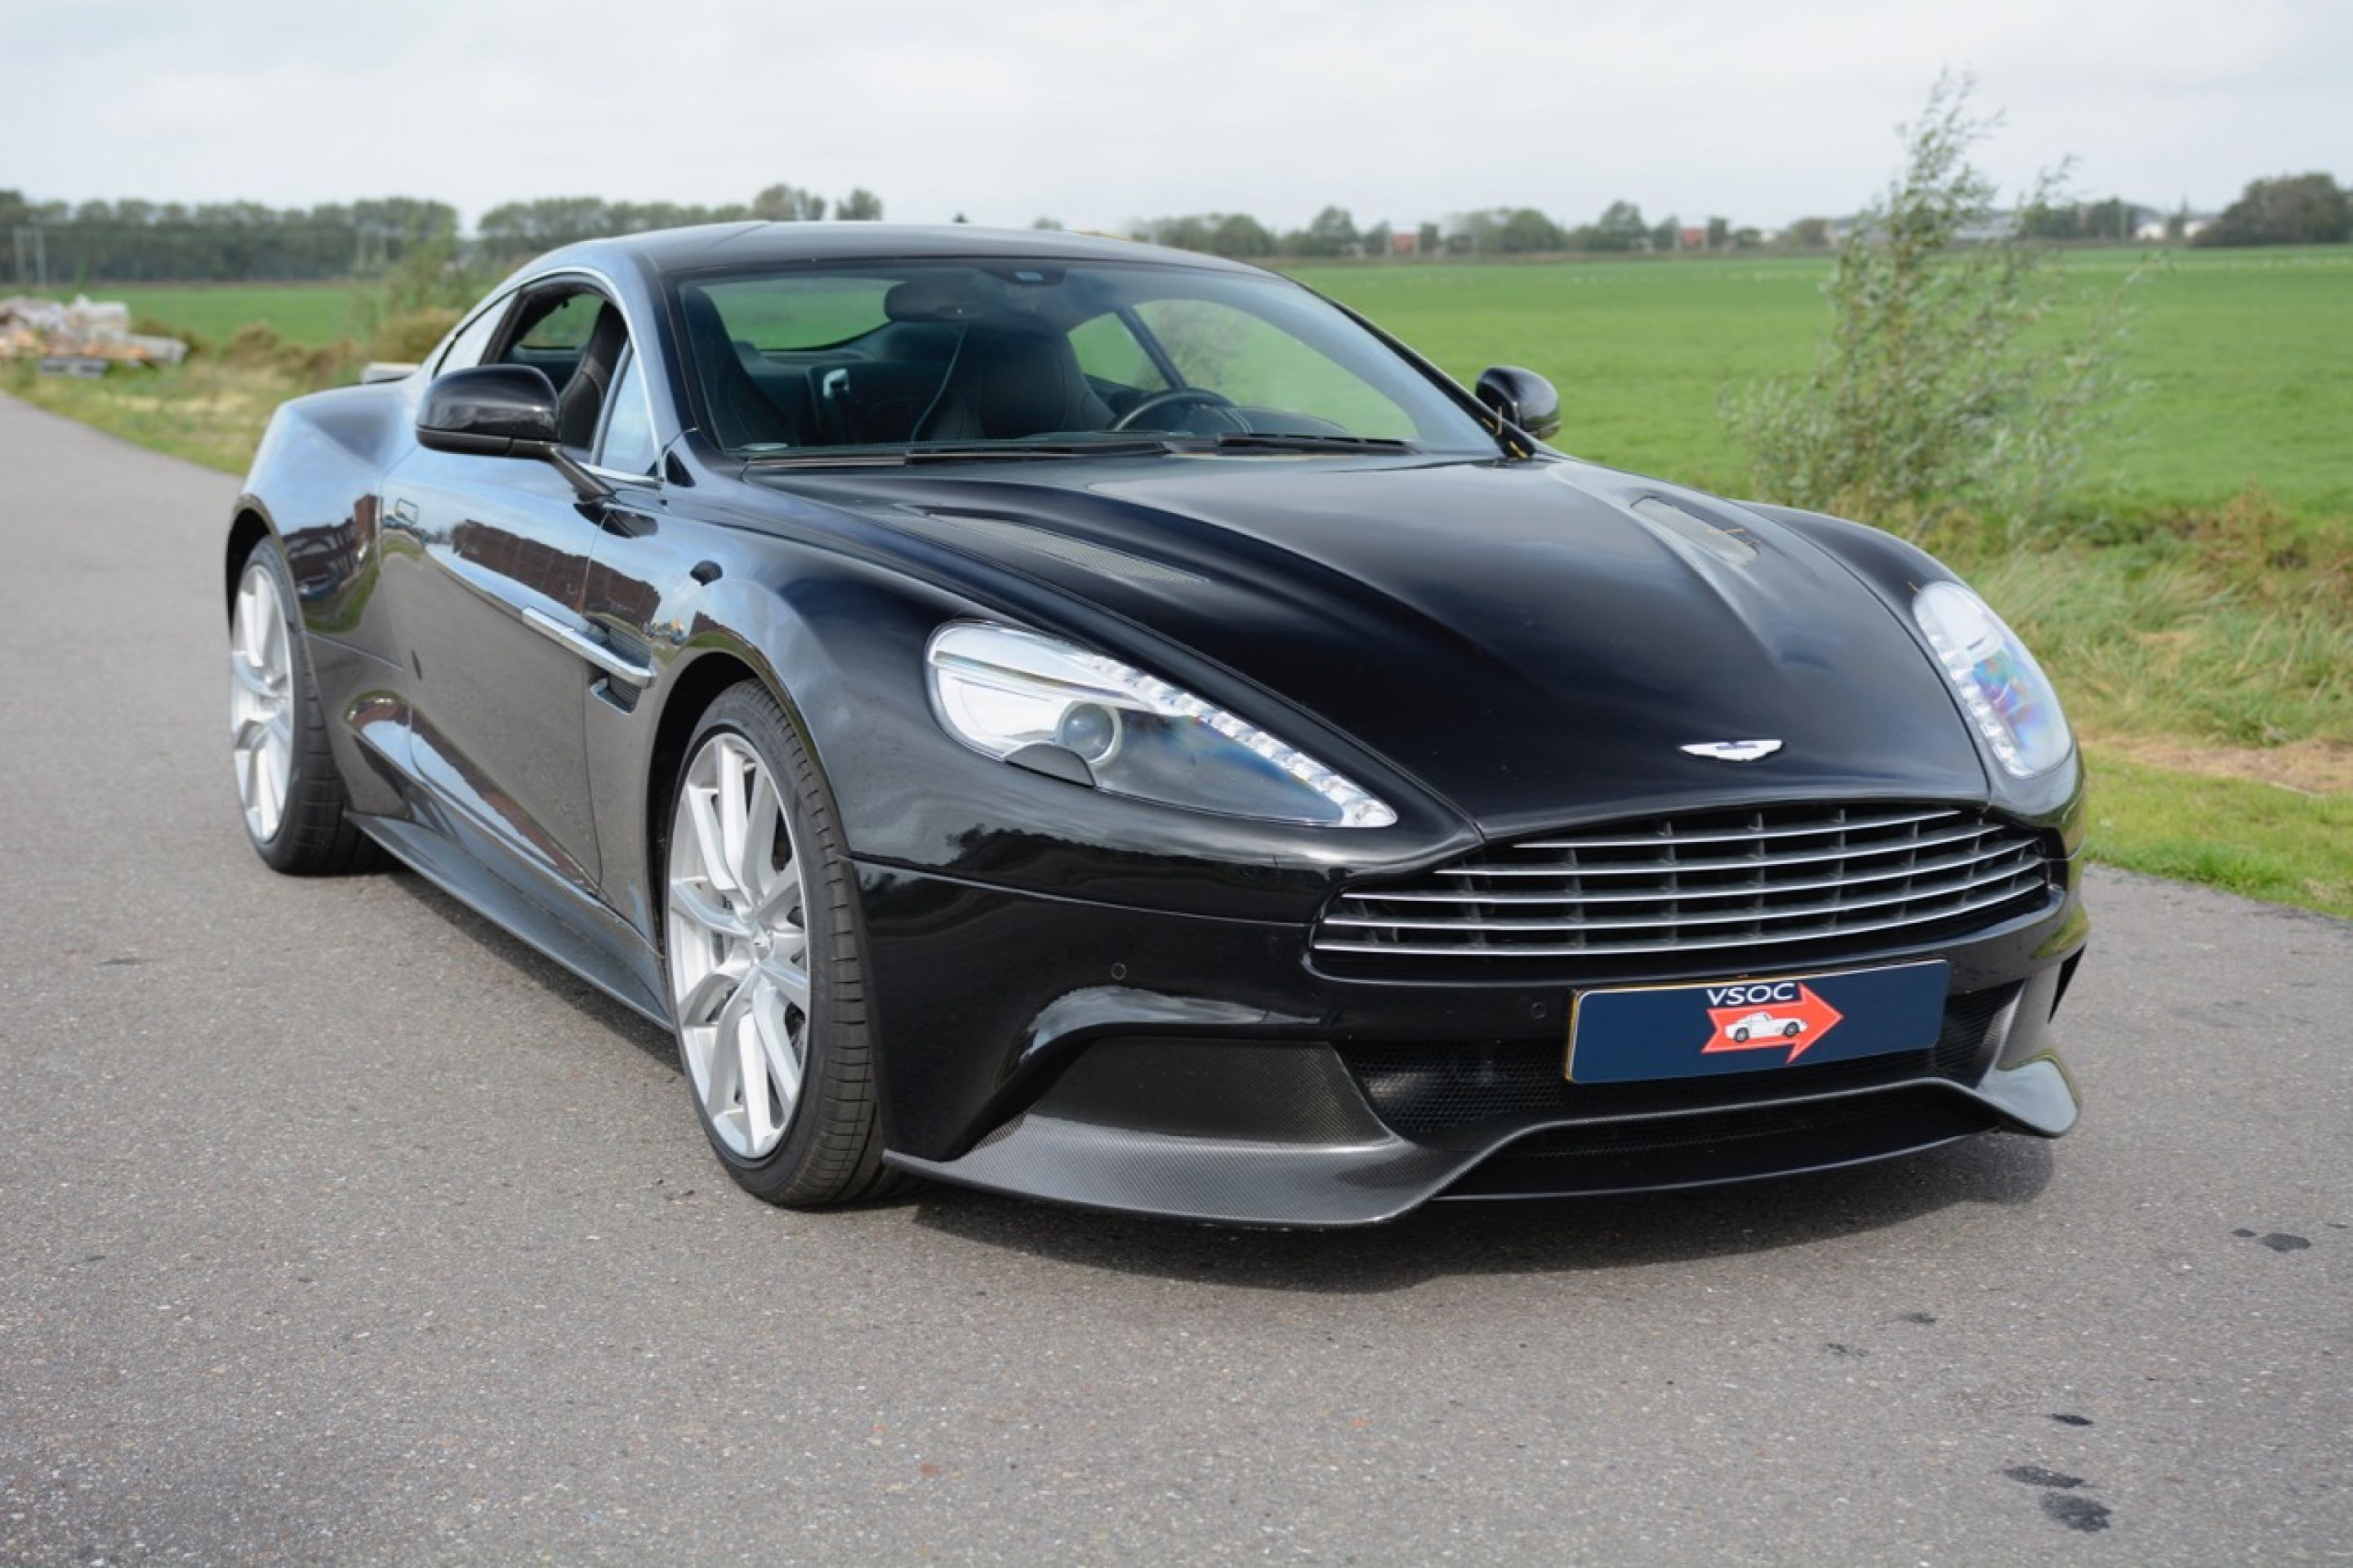 Magnificent Aston Martin Vanquish from 2013​